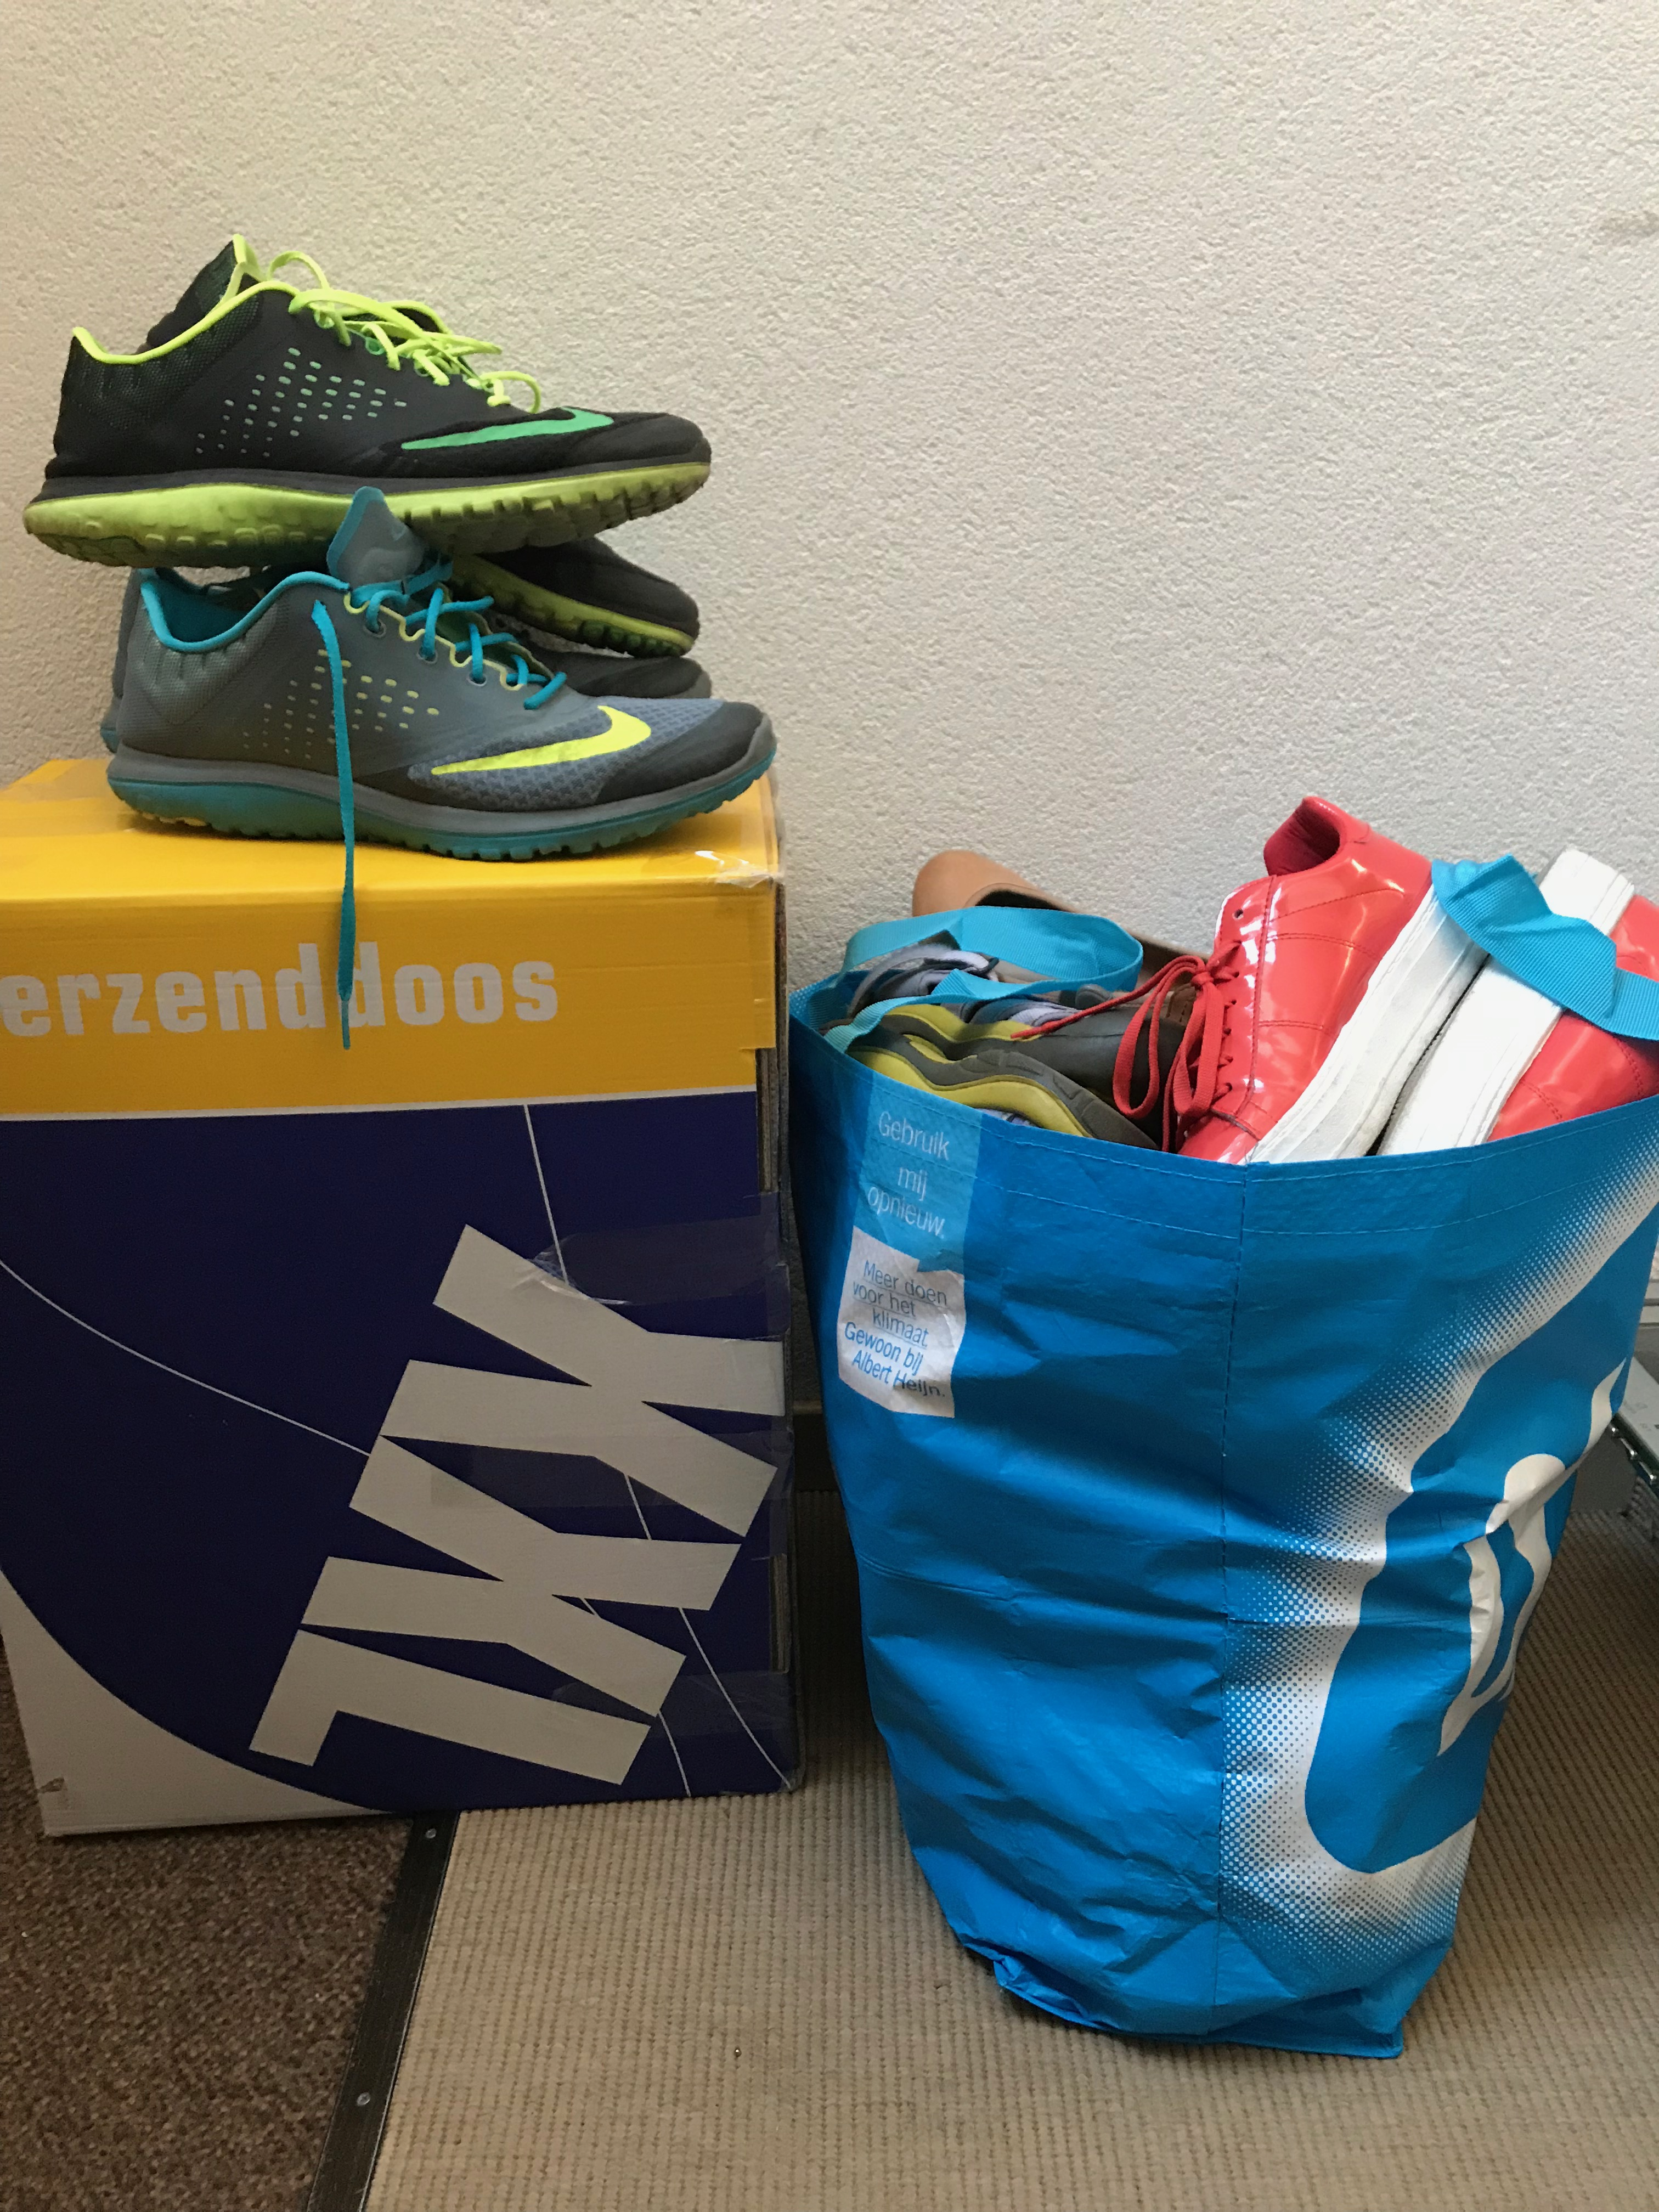 The shoes sent to Malawi